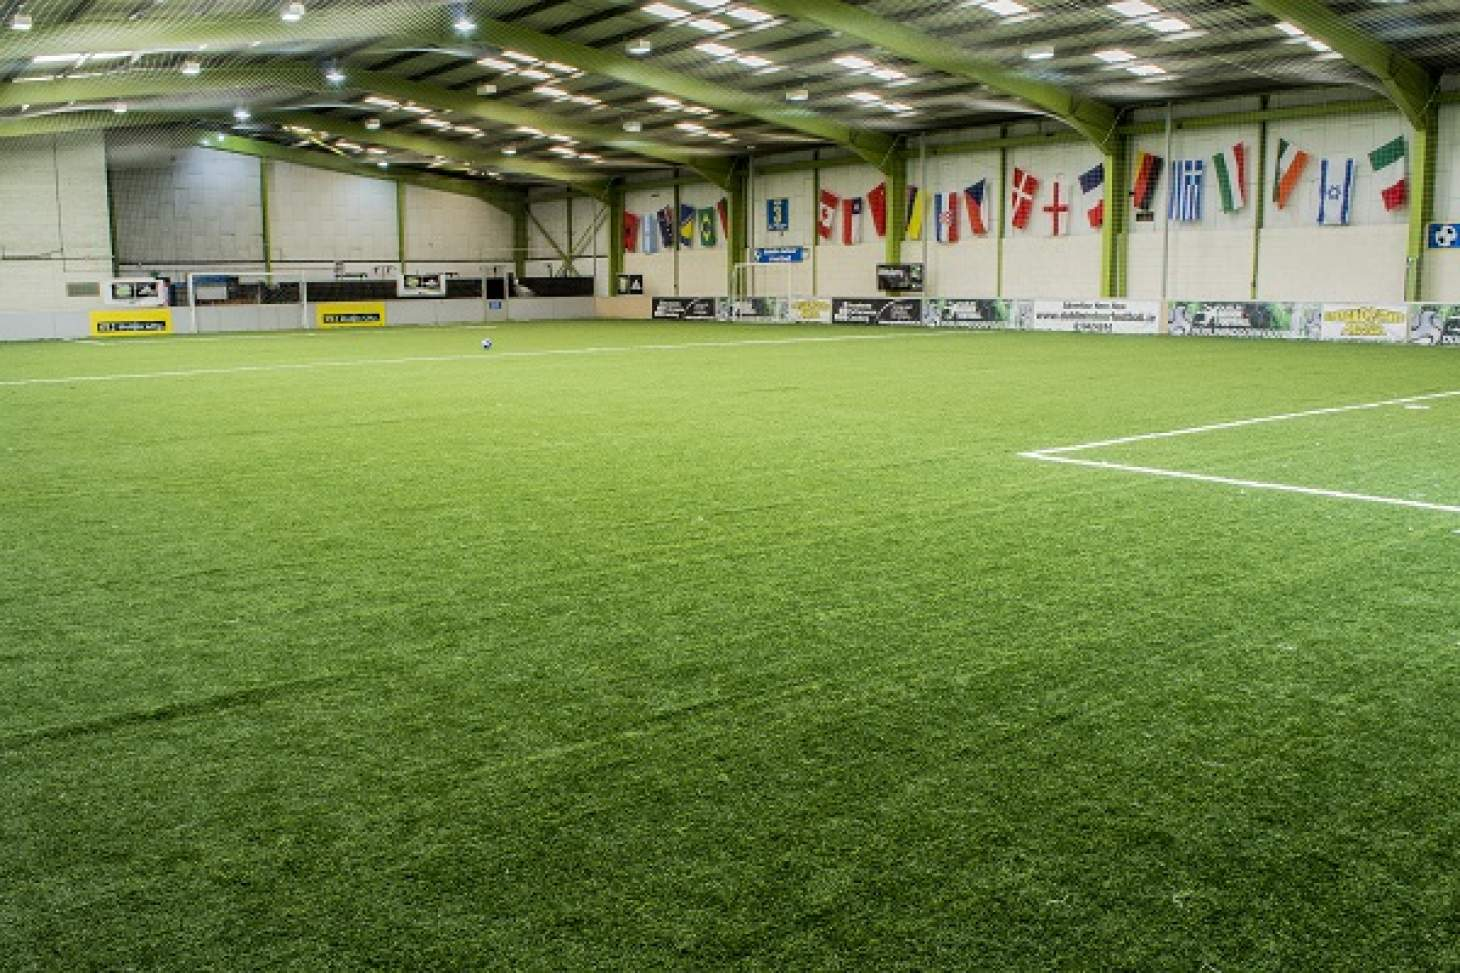 Dublin Indoor Football Union | 3G Astroturf rugby pitch